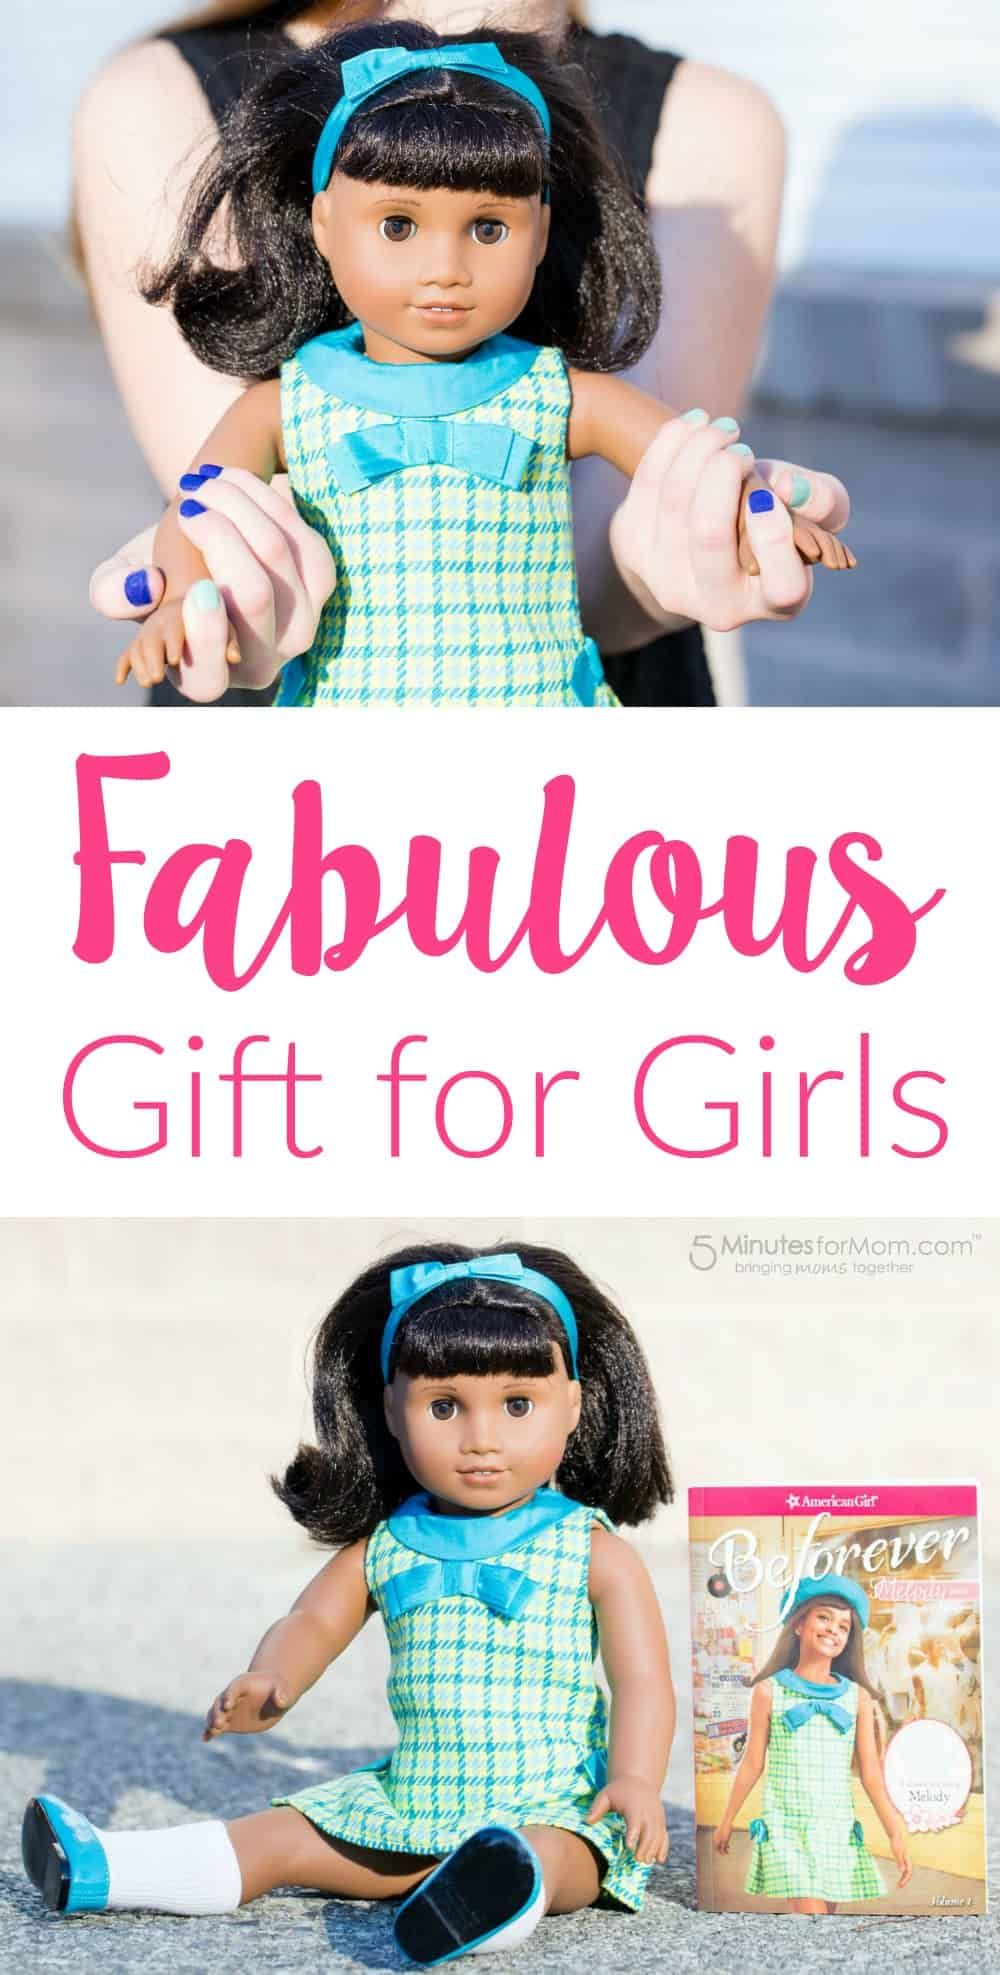 Fabulous gift for girls